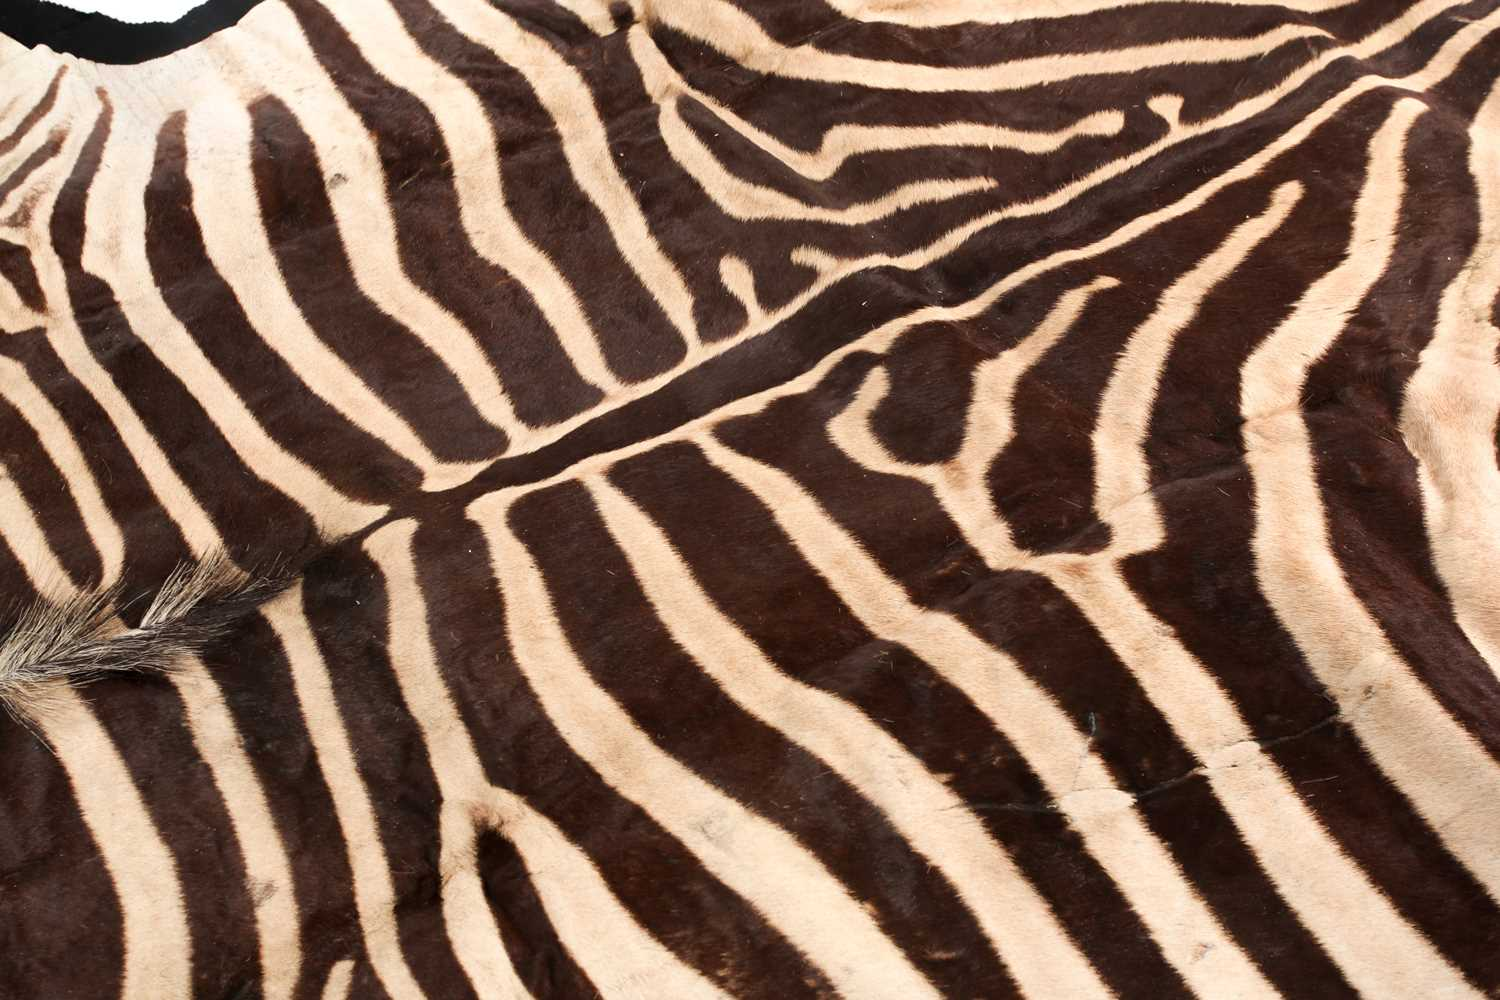 A large fabric-backed Zebra skin rug with an unblocked head. 285 cm long x 195 cm wideCondition - Image 2 of 3